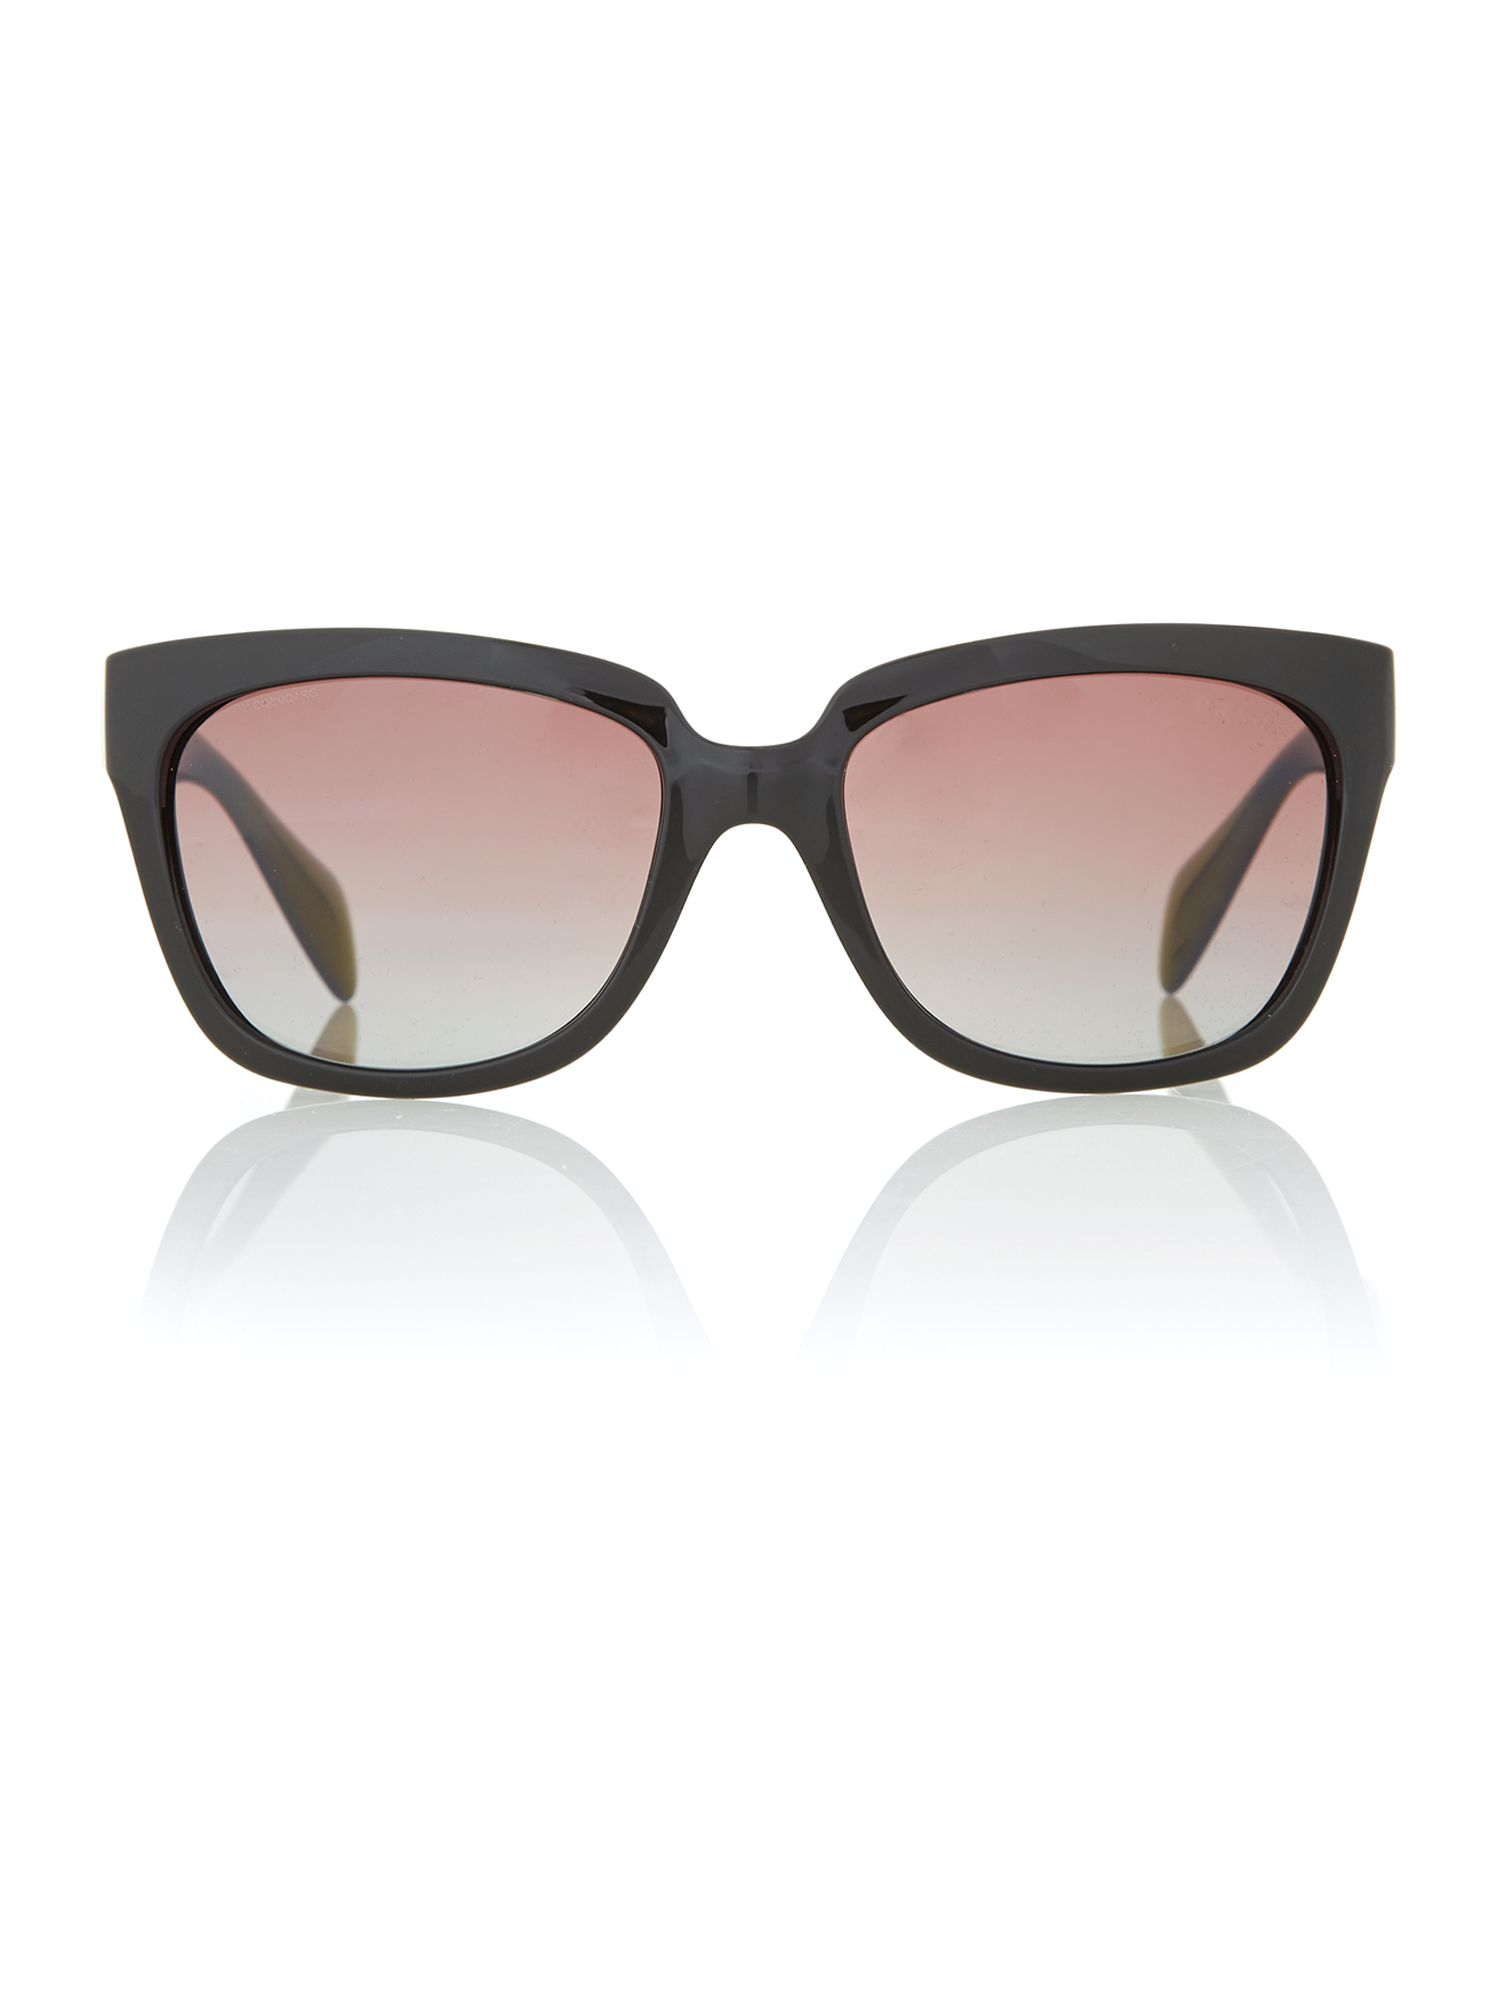 Ladies Black Sqaure Sunglasses